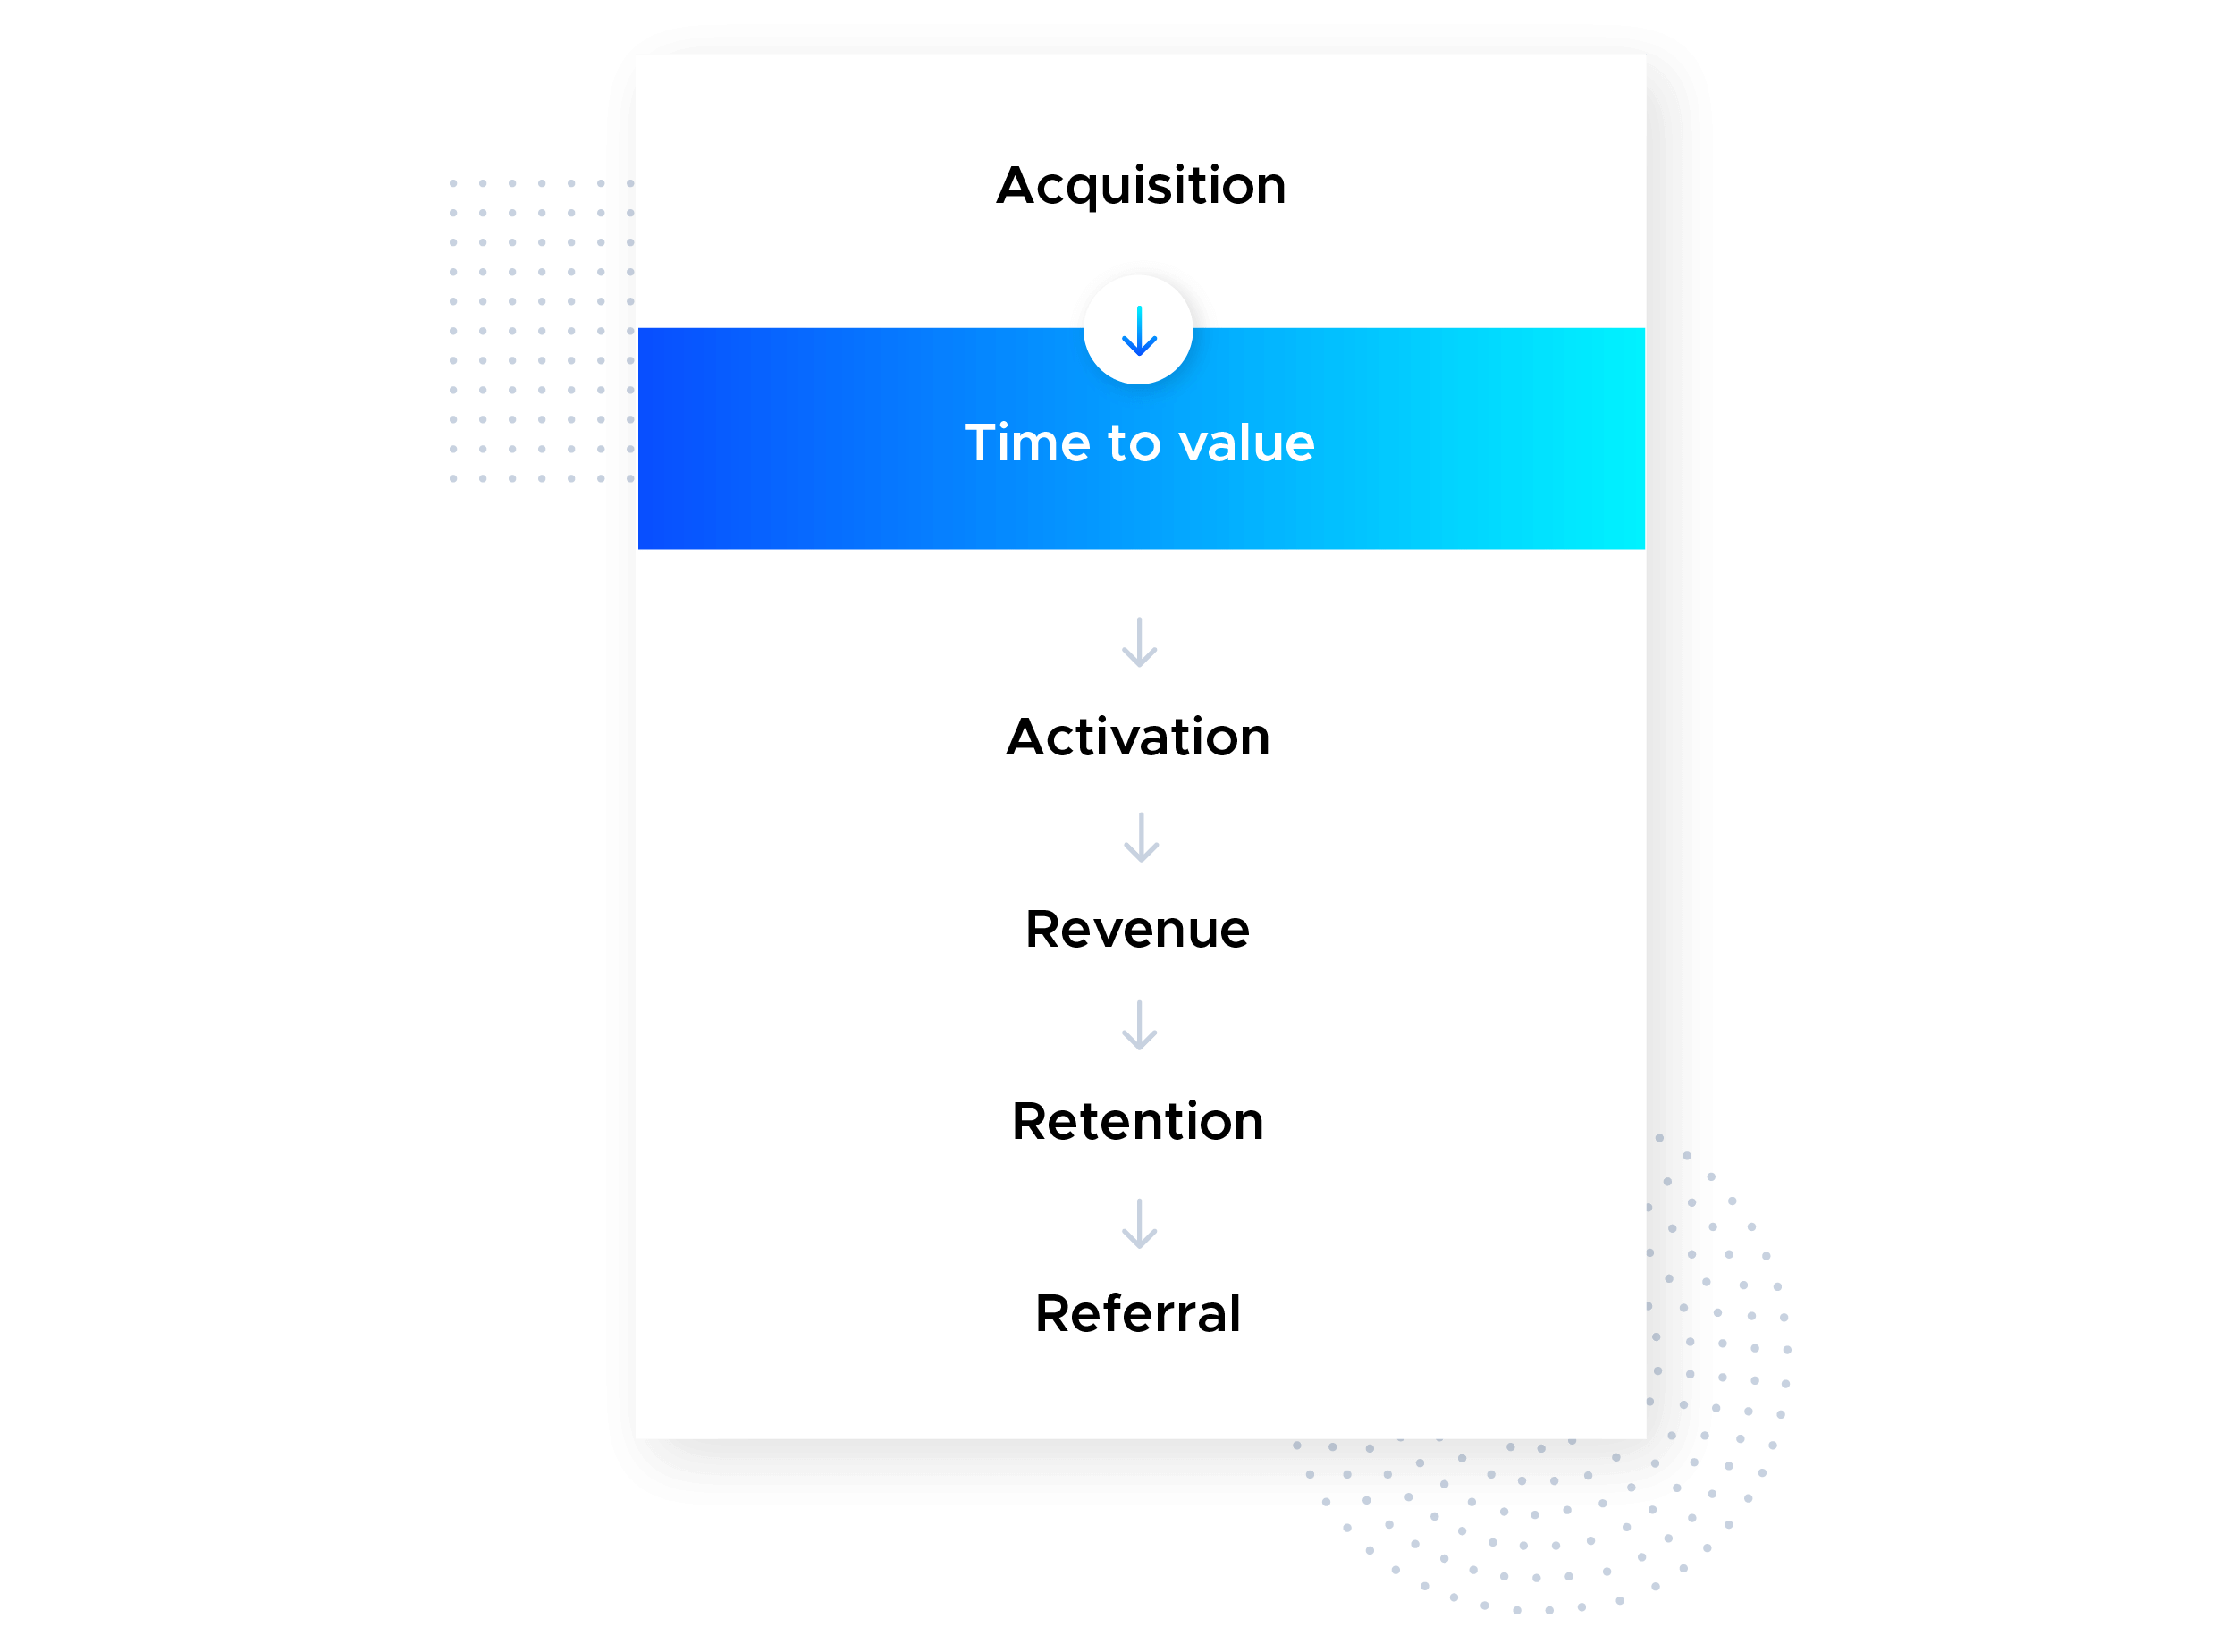 This is an infographic image that shows how time to value (TTV) fits into the pirate metrics—acquisition, activation, revenue, retention, referral. The order of the pirate SaaS metrics is an alternative version of Dave McClure's model. This image is from the Product-Led Growth Collective.